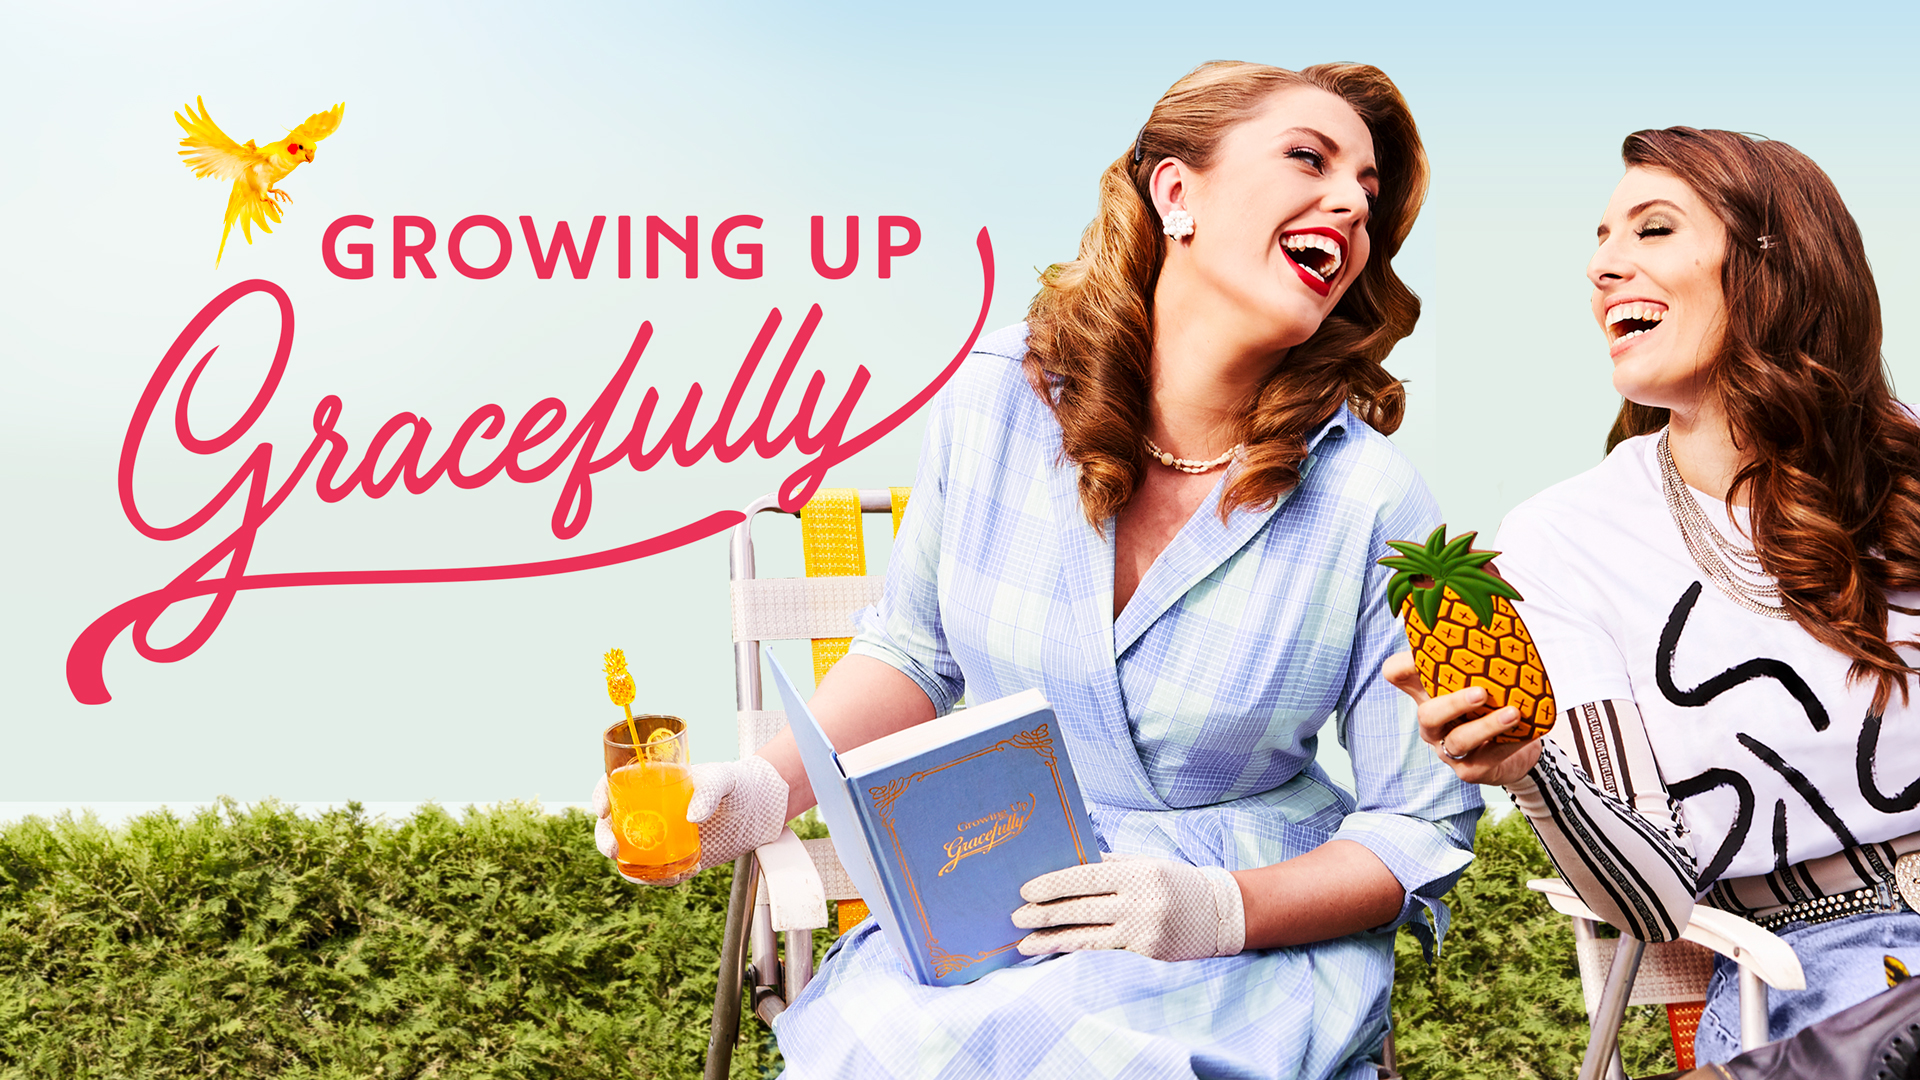 Growing Up Gracefully - Series 1